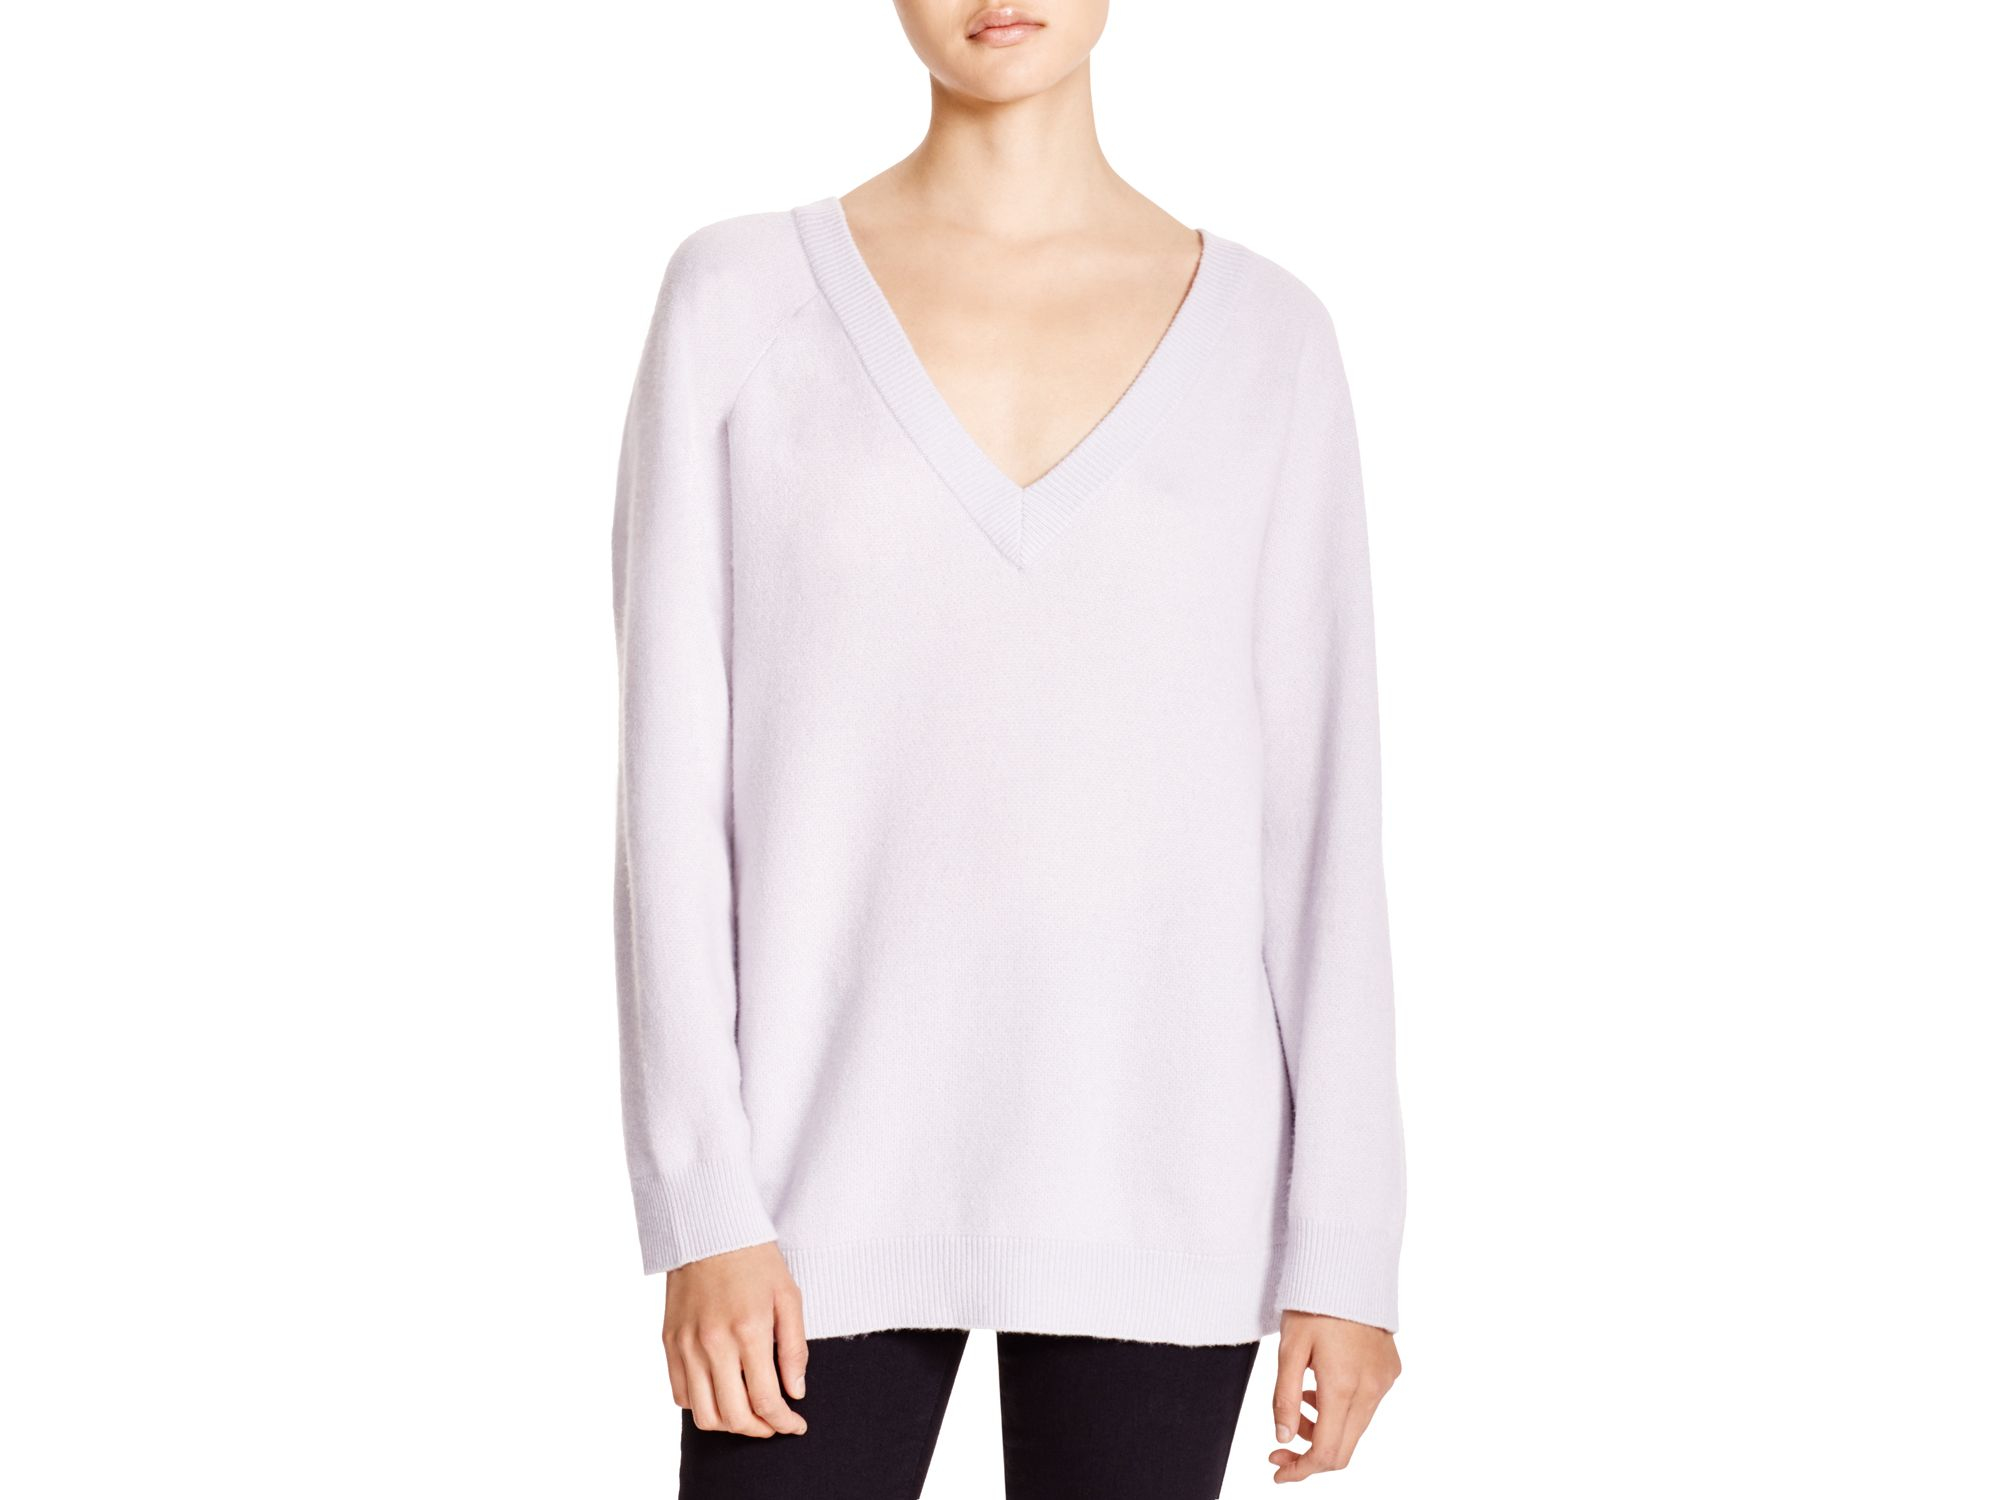 T by alexander wang Wool Cashmere V Neck Sweater in White | Lyst